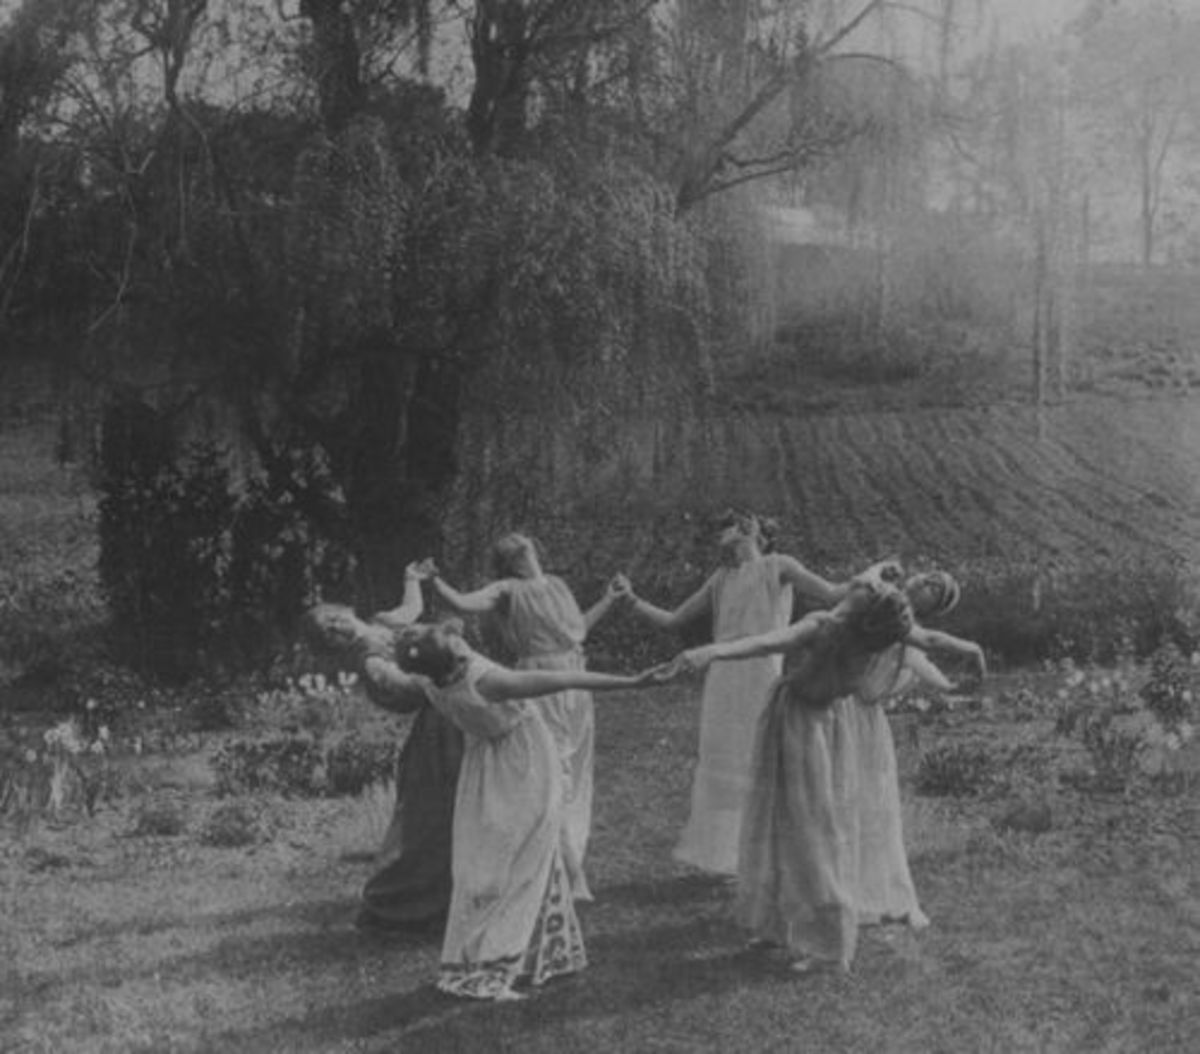 A coven of Witches (possibly similar to Thorbjorg and her sisters).